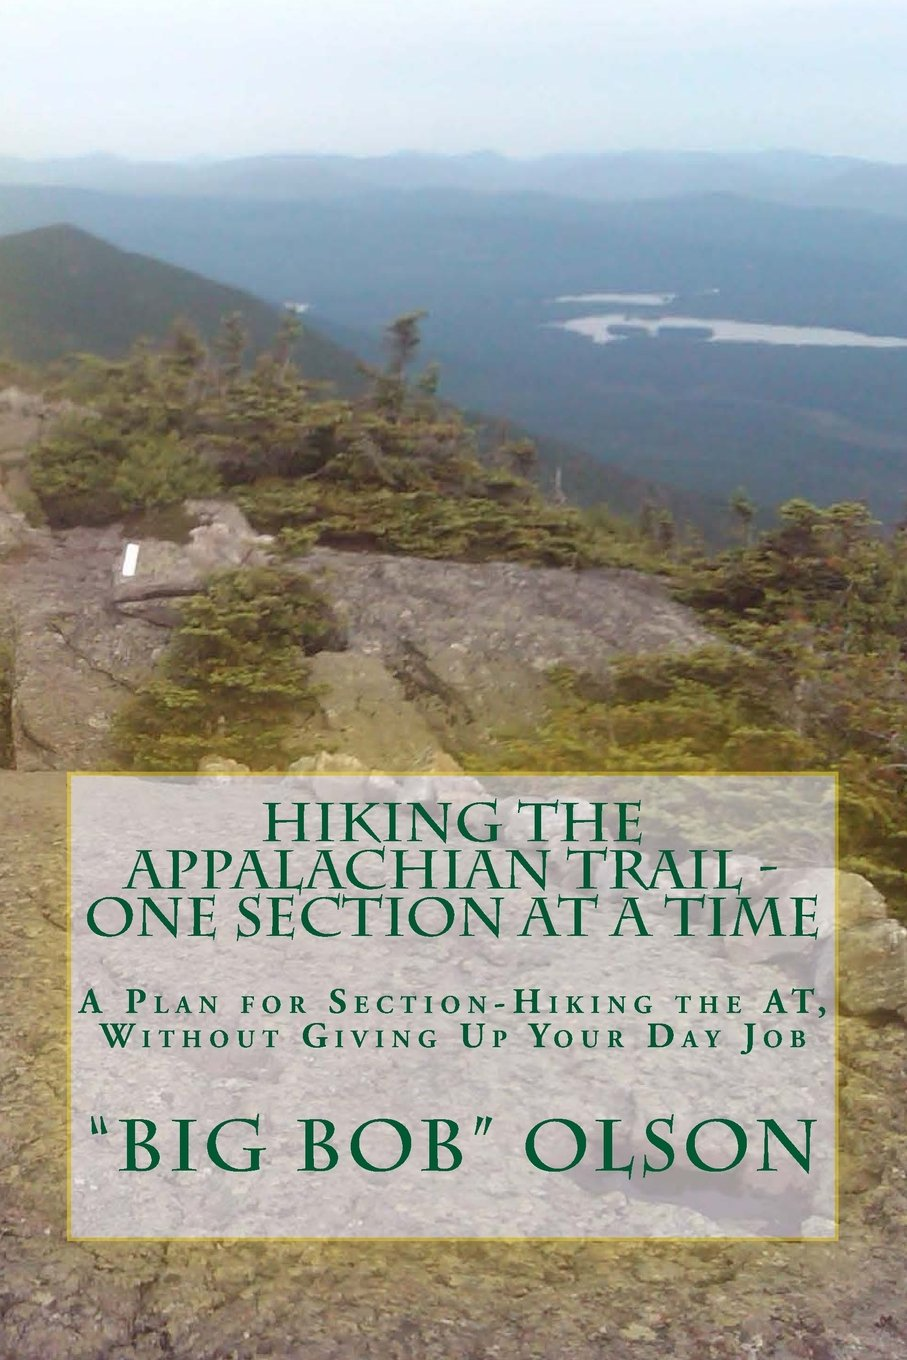 a4d86c992f9 Hiking the Appalachian Trail - One Section at a Time  A Plan for Section- Hiking the AT